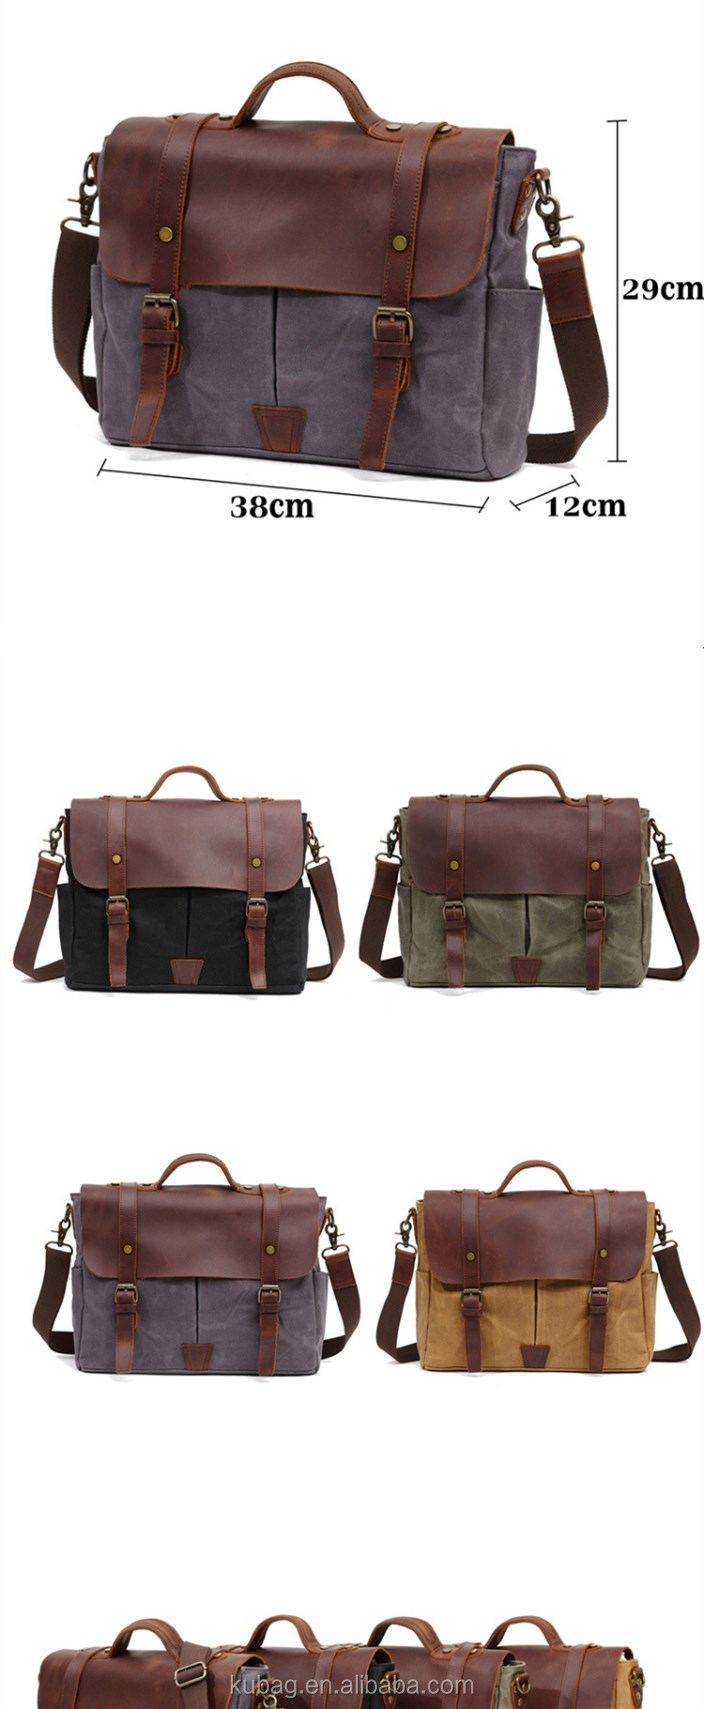 wholesale China shop online leather laptop bag men's computer leather bag handbags for men genuine leather